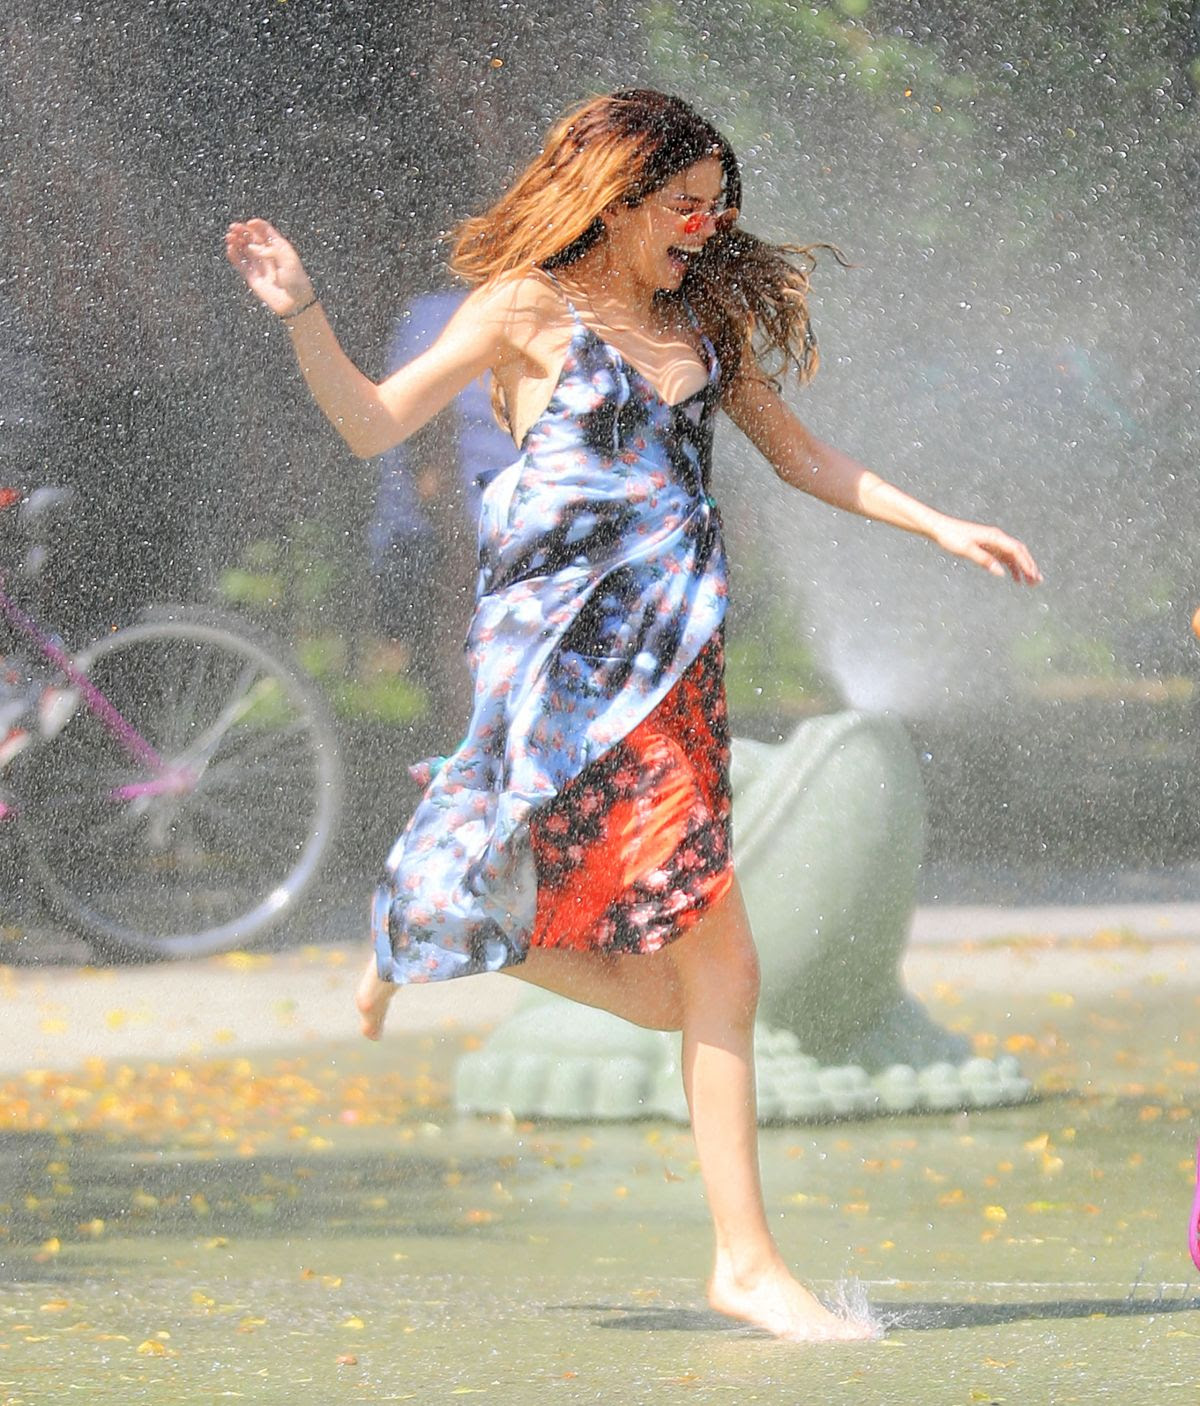 SELENA GOMEZ Running Thru Sprinklers at Water Playground in Brooklyn 06/01/2016